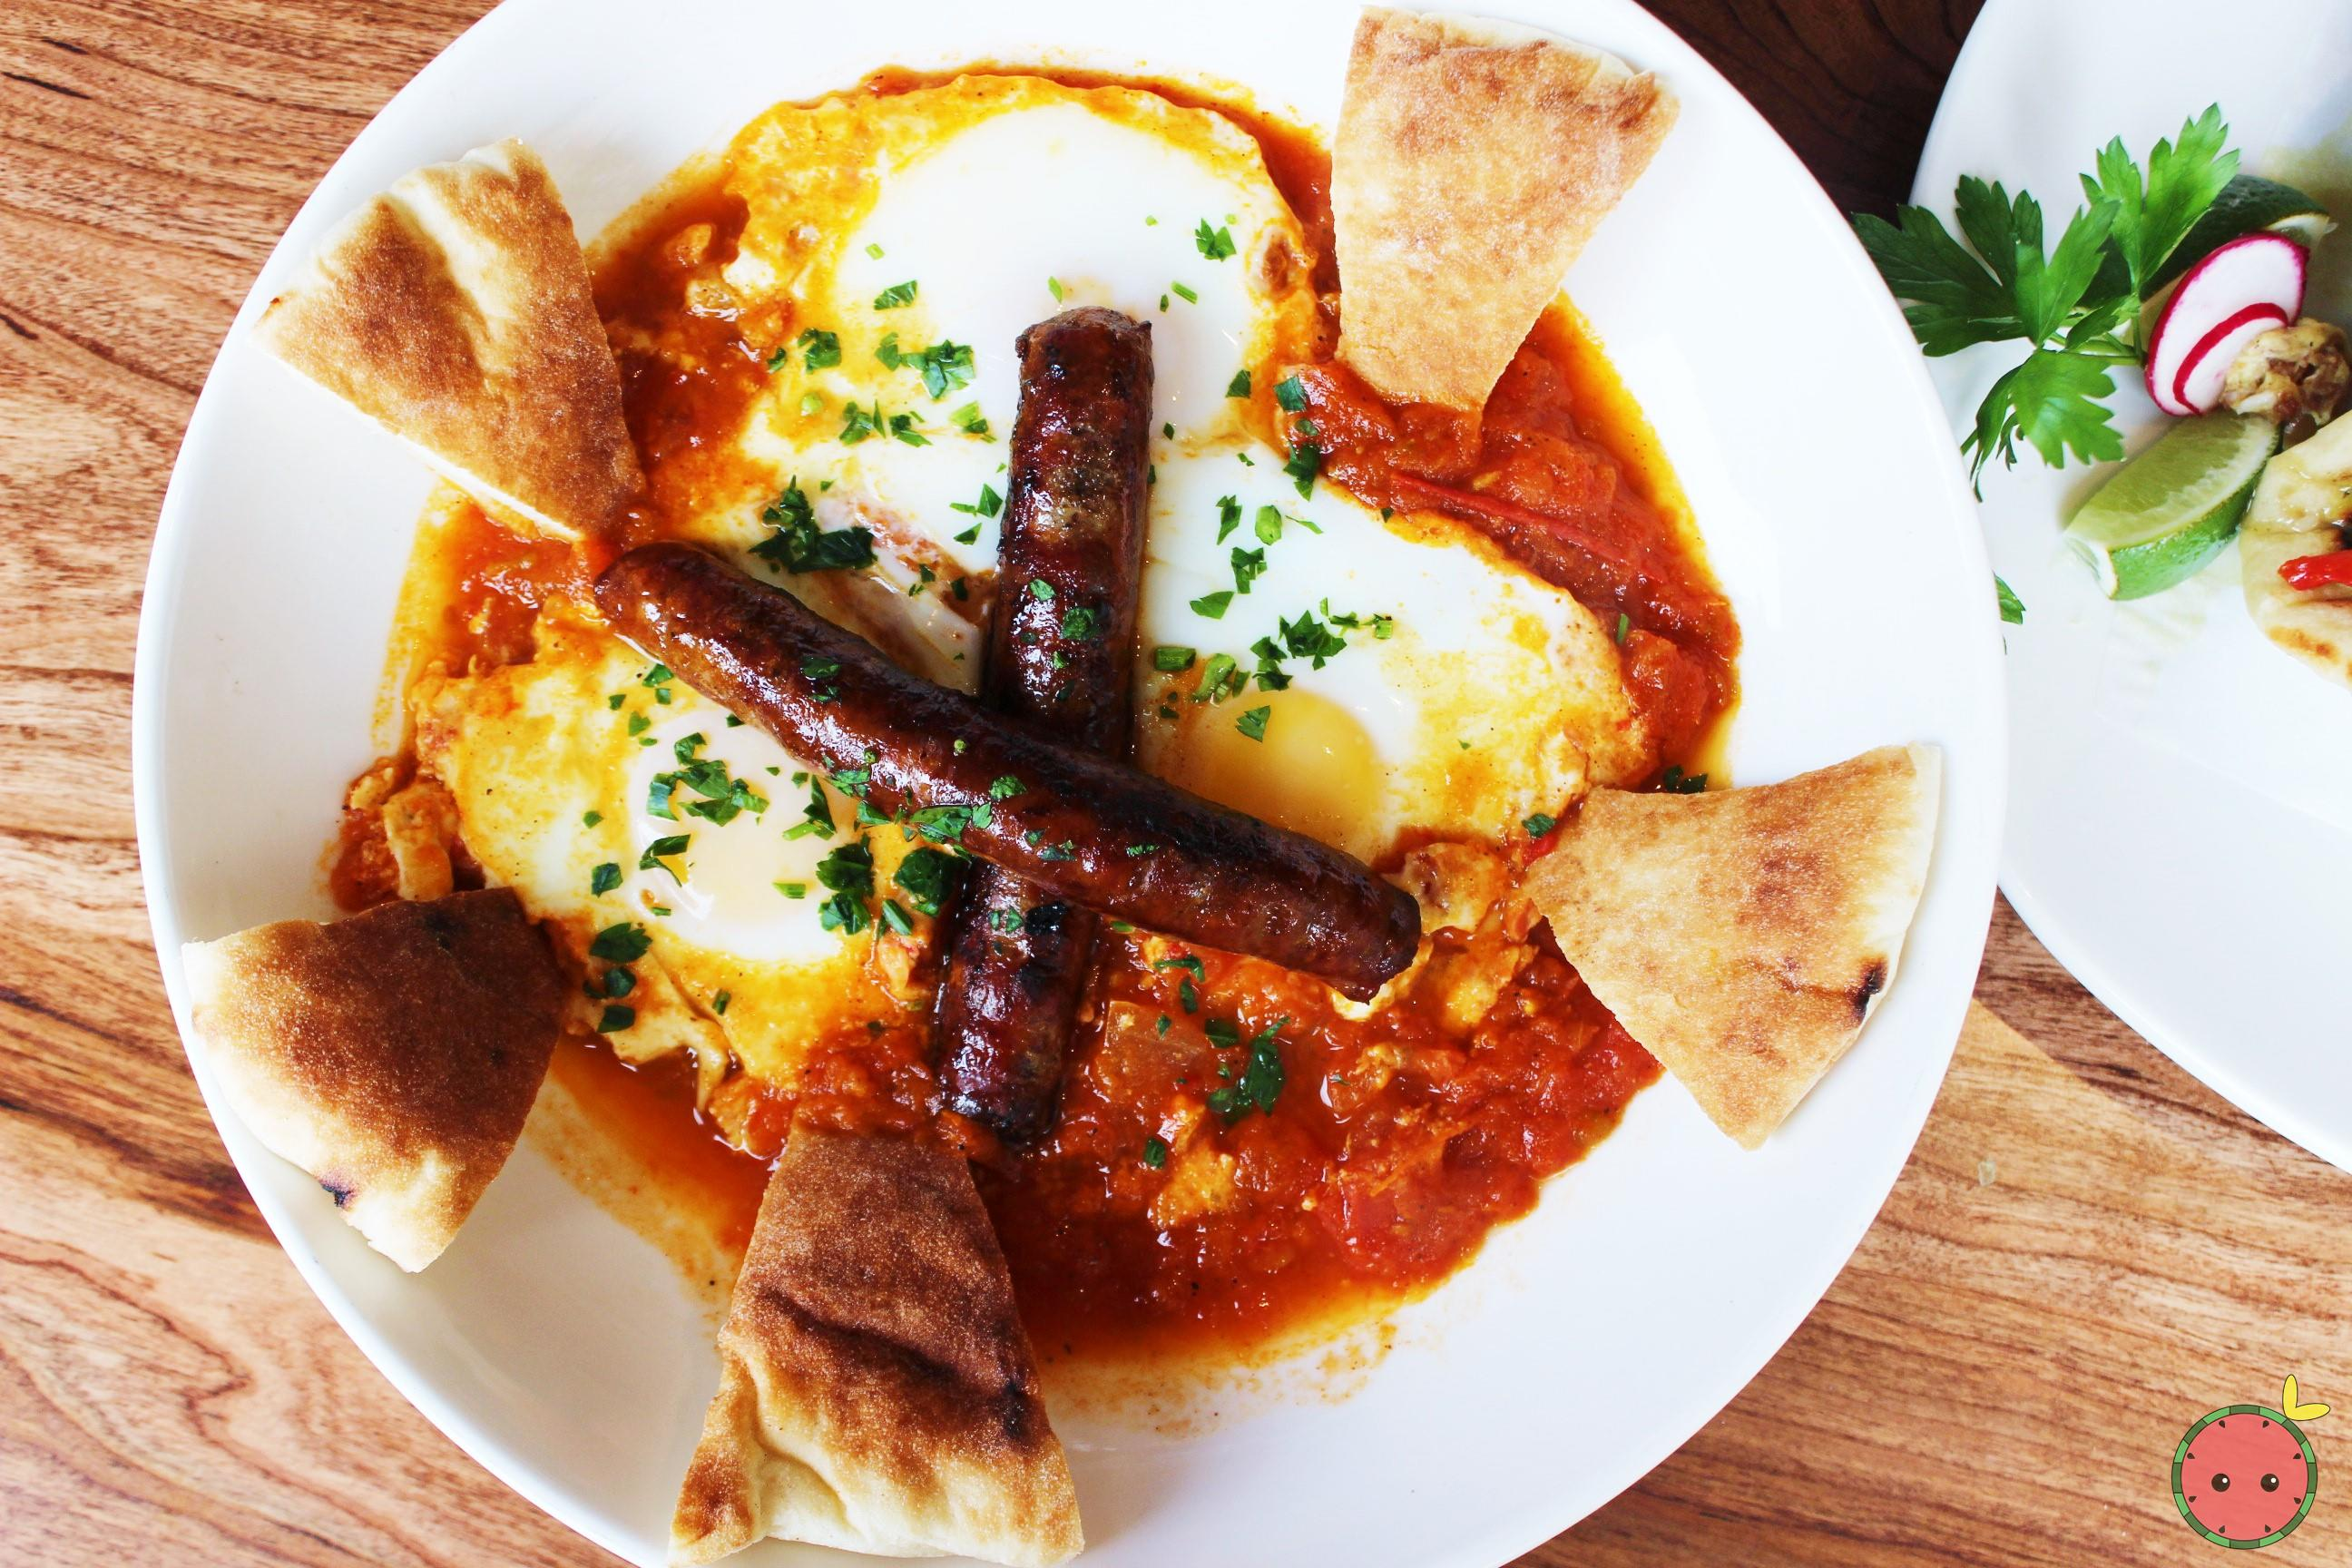 Shakshuka Moroccan Breakfast - Three eggs baked with tomato, onion, pepper, spices, tahini, pita, an